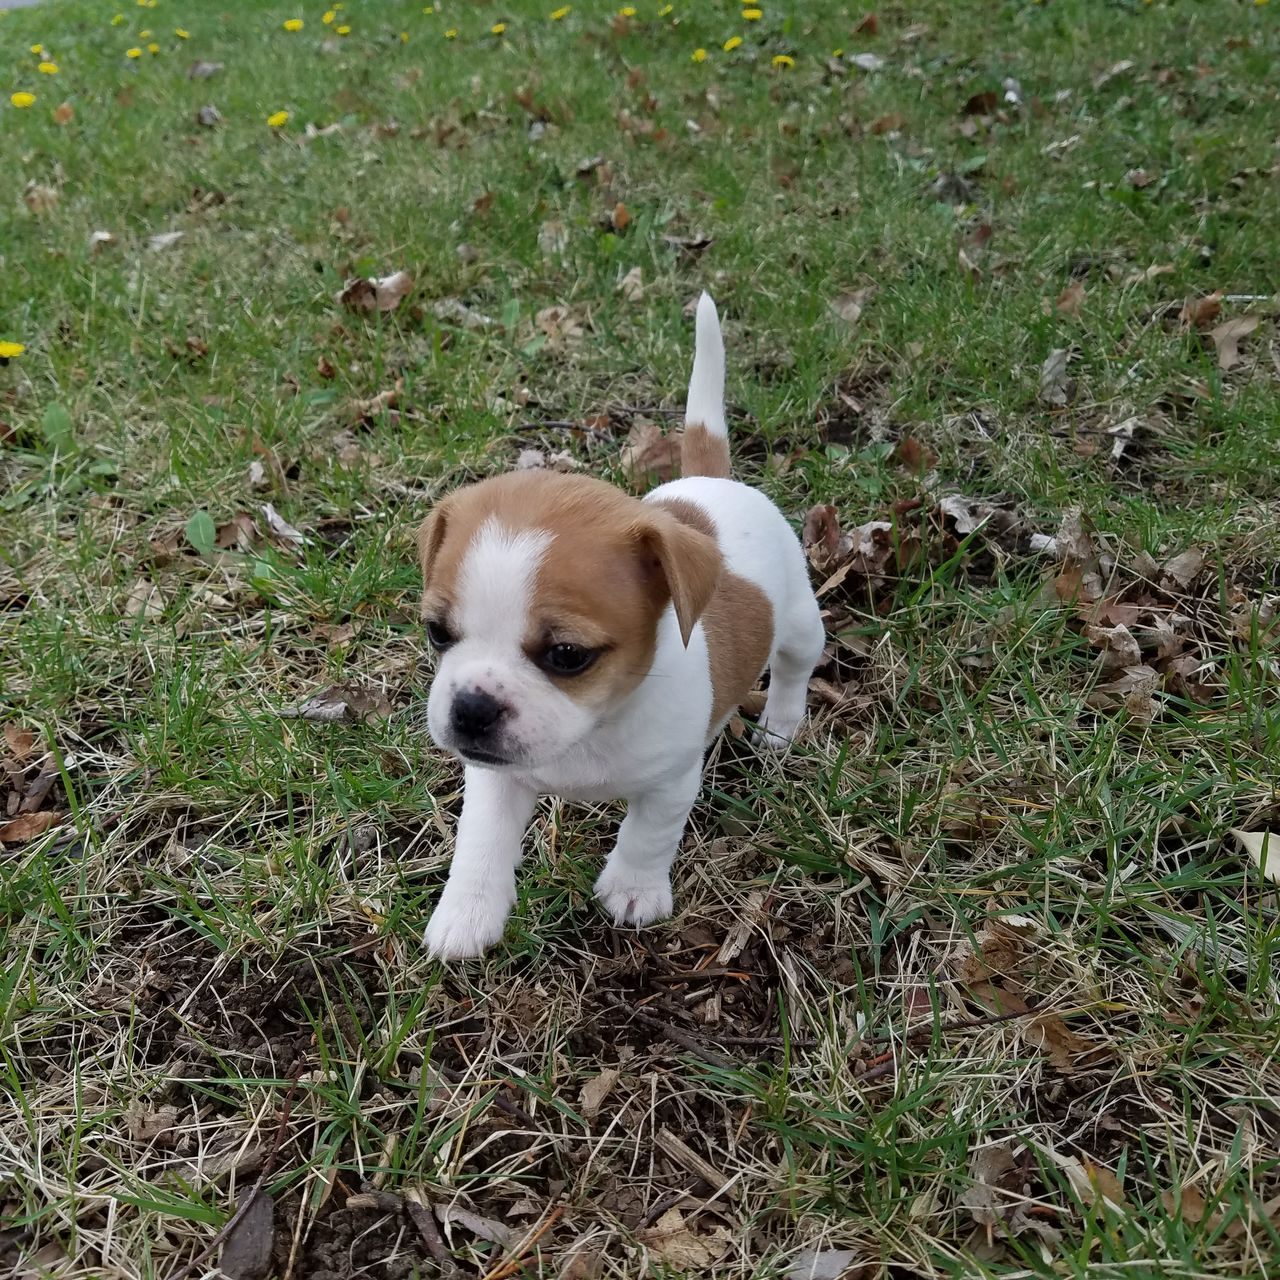 dog, grass, one animal, mammal, pets, domestic animals, animal themes, puppy, outdoors, no people, day, nature